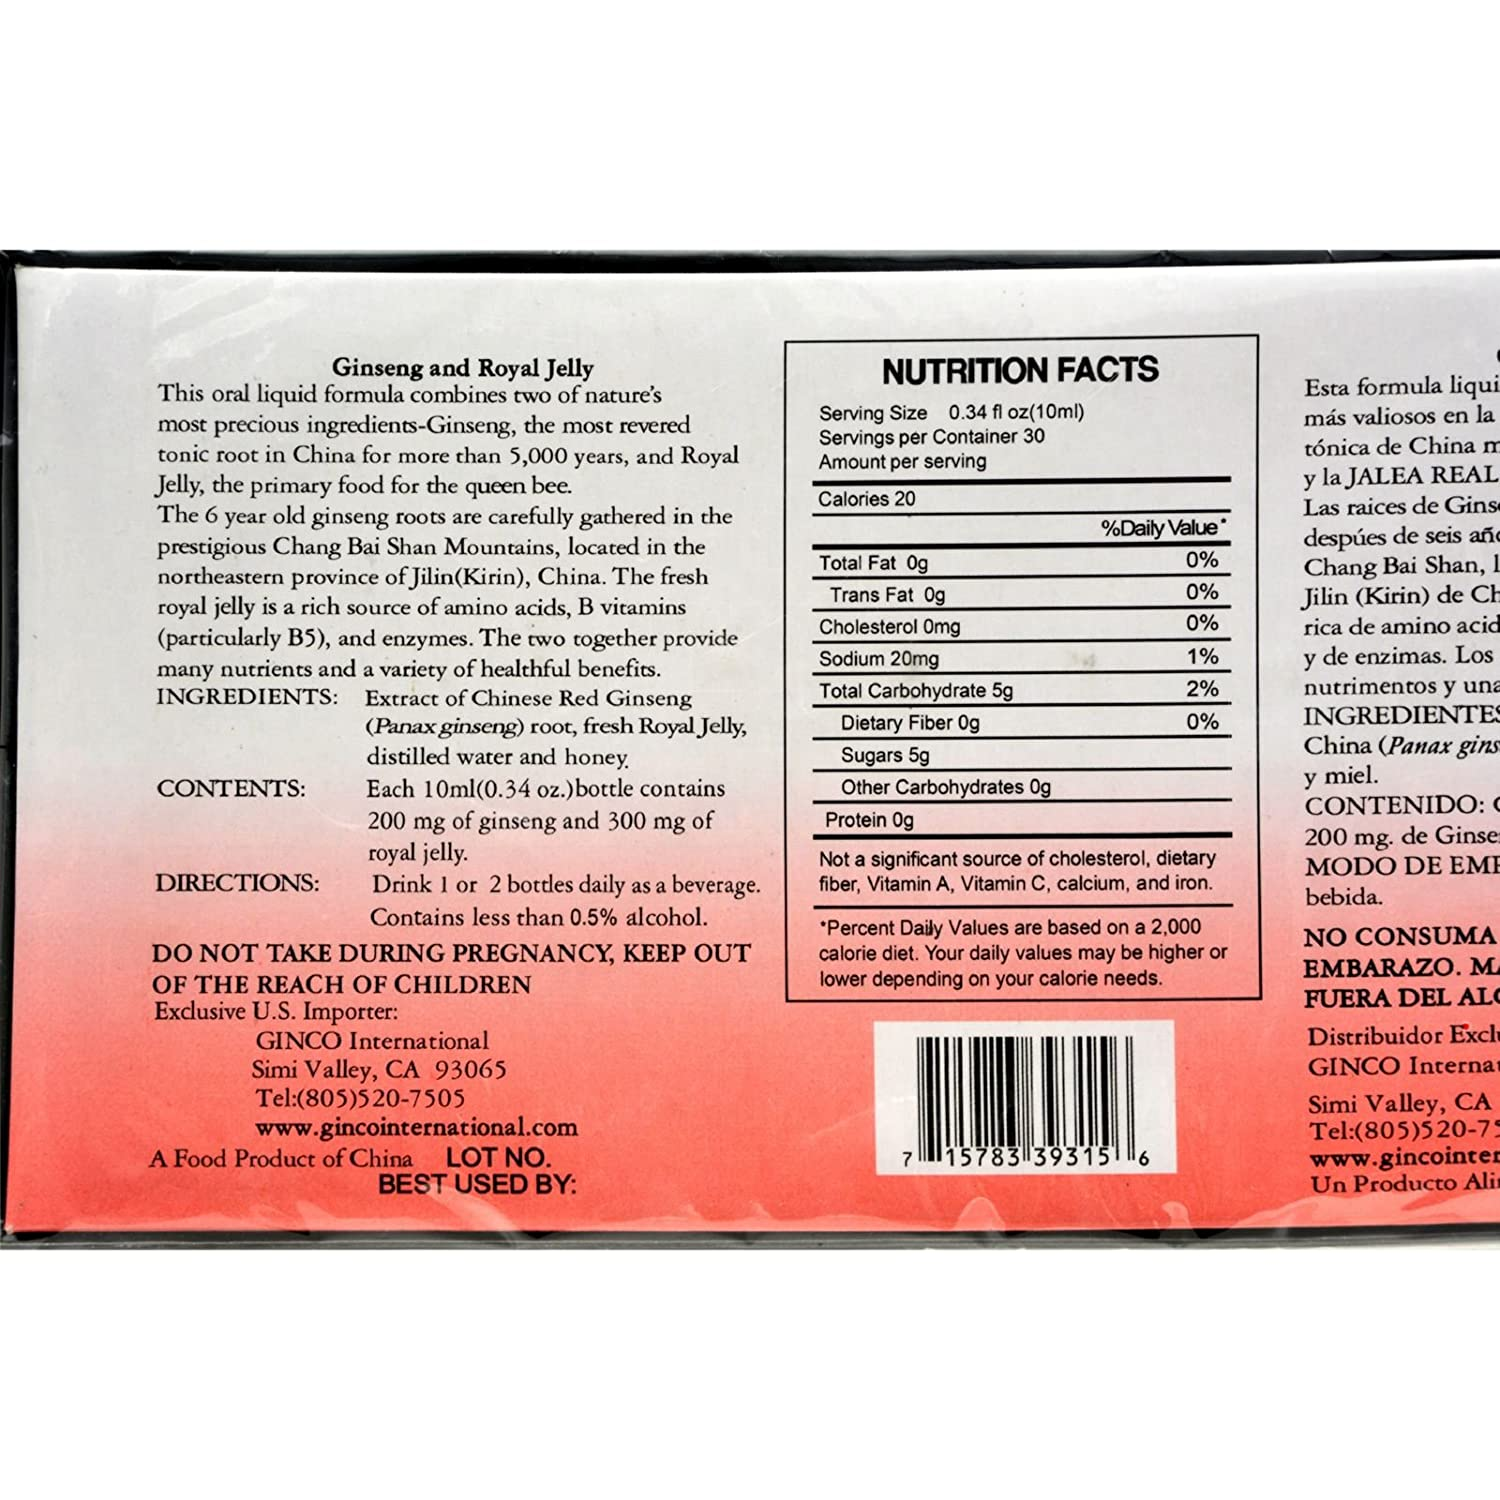 Amazon.com: Imperial Elixir Ginseng and Royal Jelly - 10 mg - 30 ...